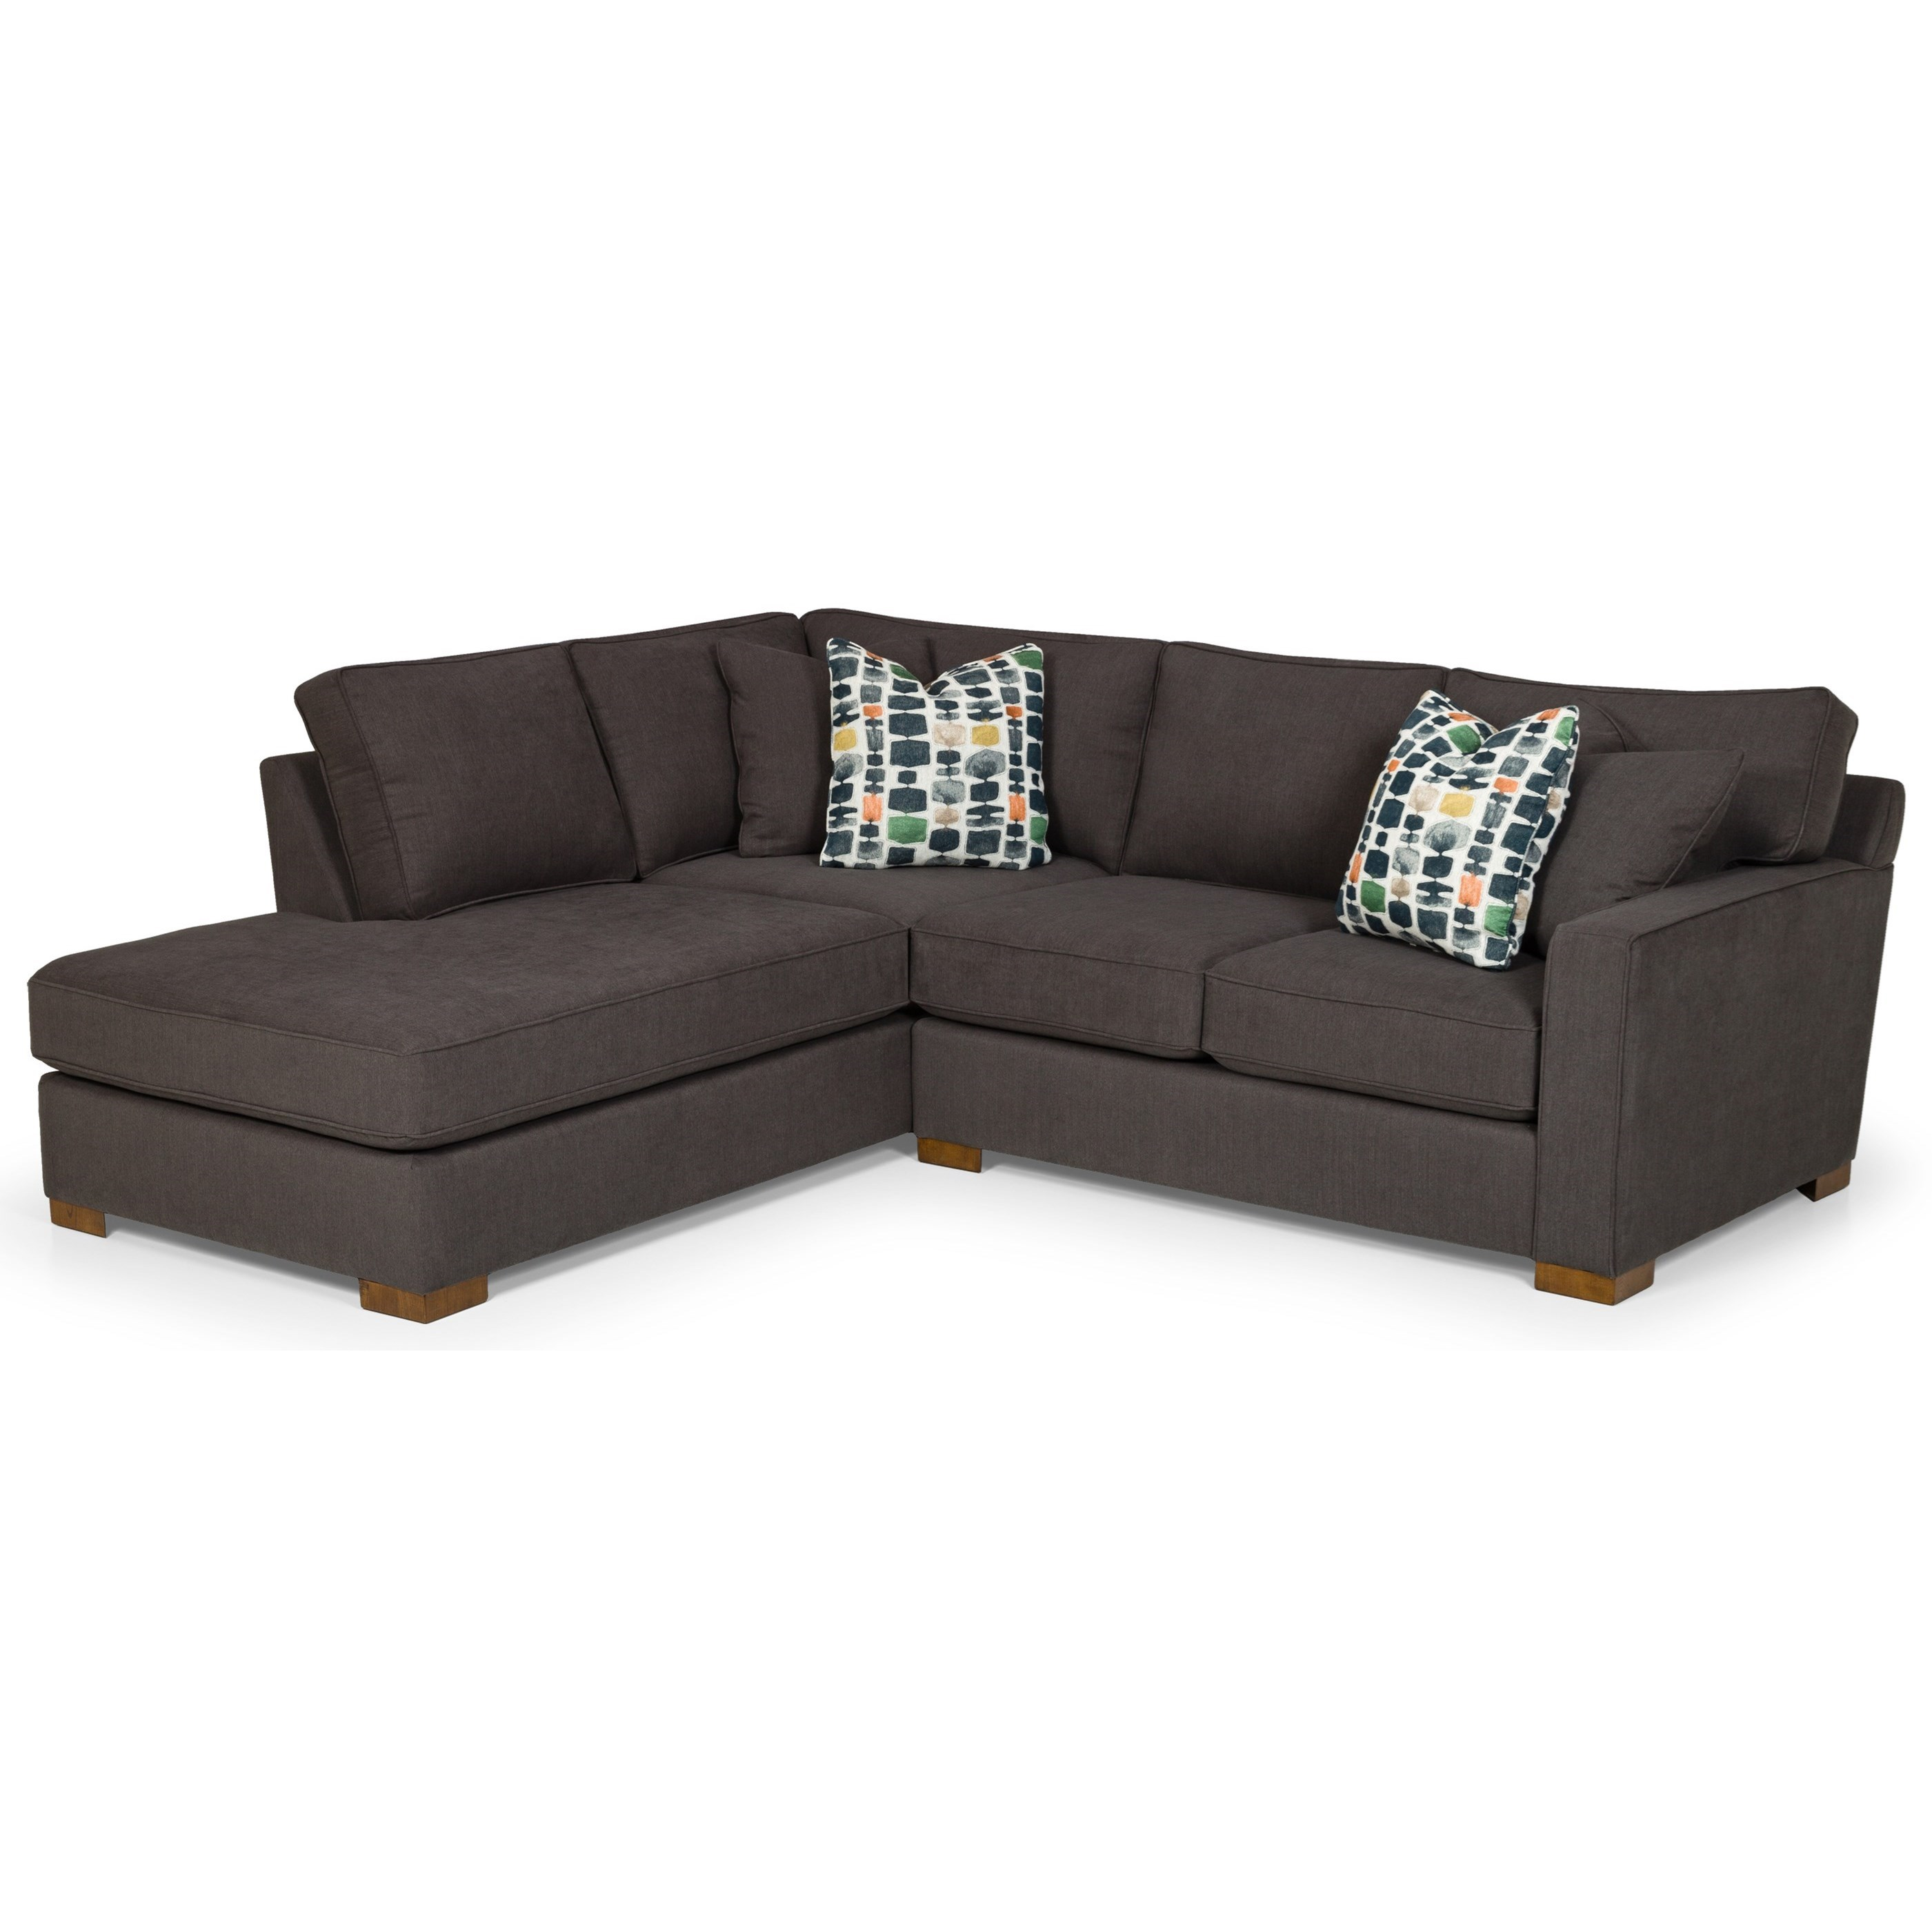 483 3-Seat Sectional Sofa w/ LAF Chaise by Sunset Home at Sadler's Home Furnishings